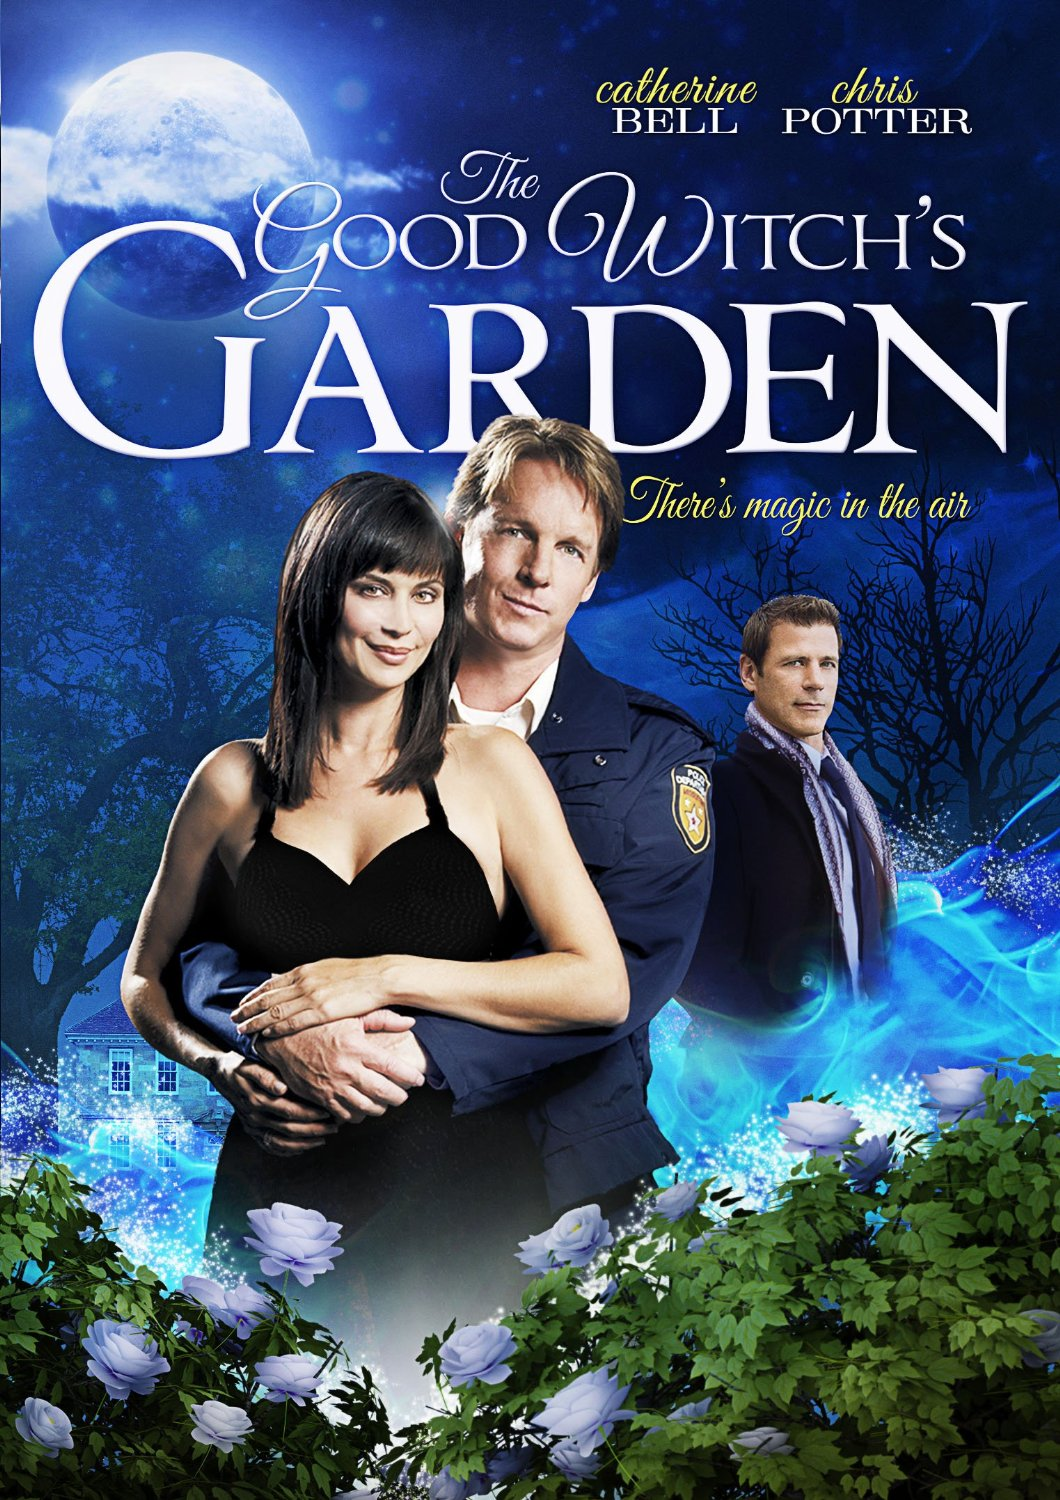 Enter To Win The Good Witch 39 S Garden On Dvd Ended Mediamikes